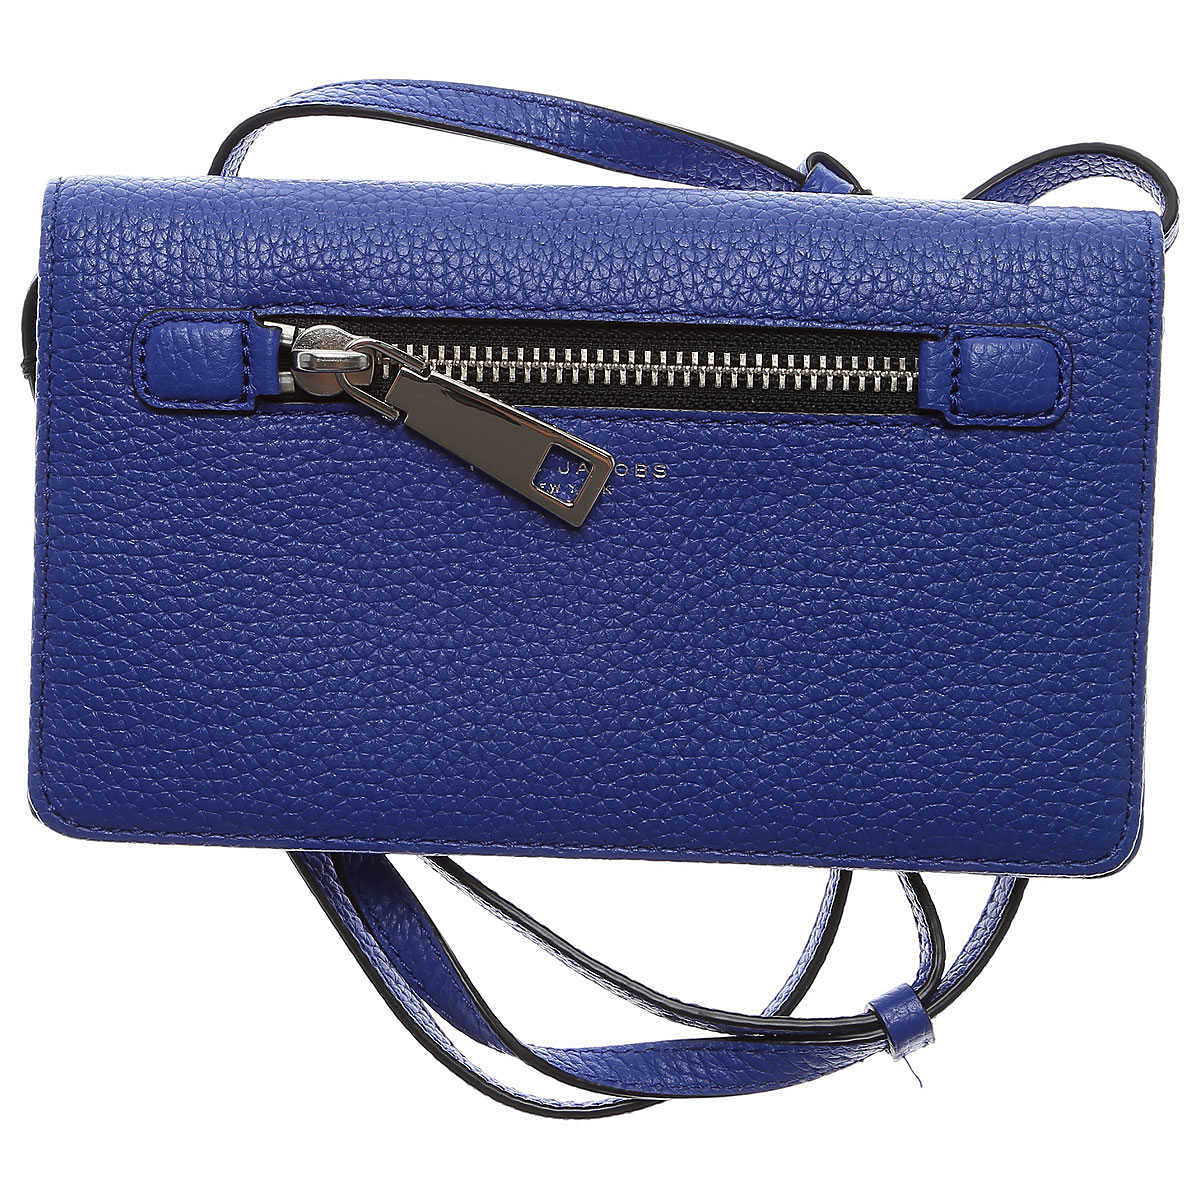 Marc Jacobs Wallet for Women Blue - GOOFASH